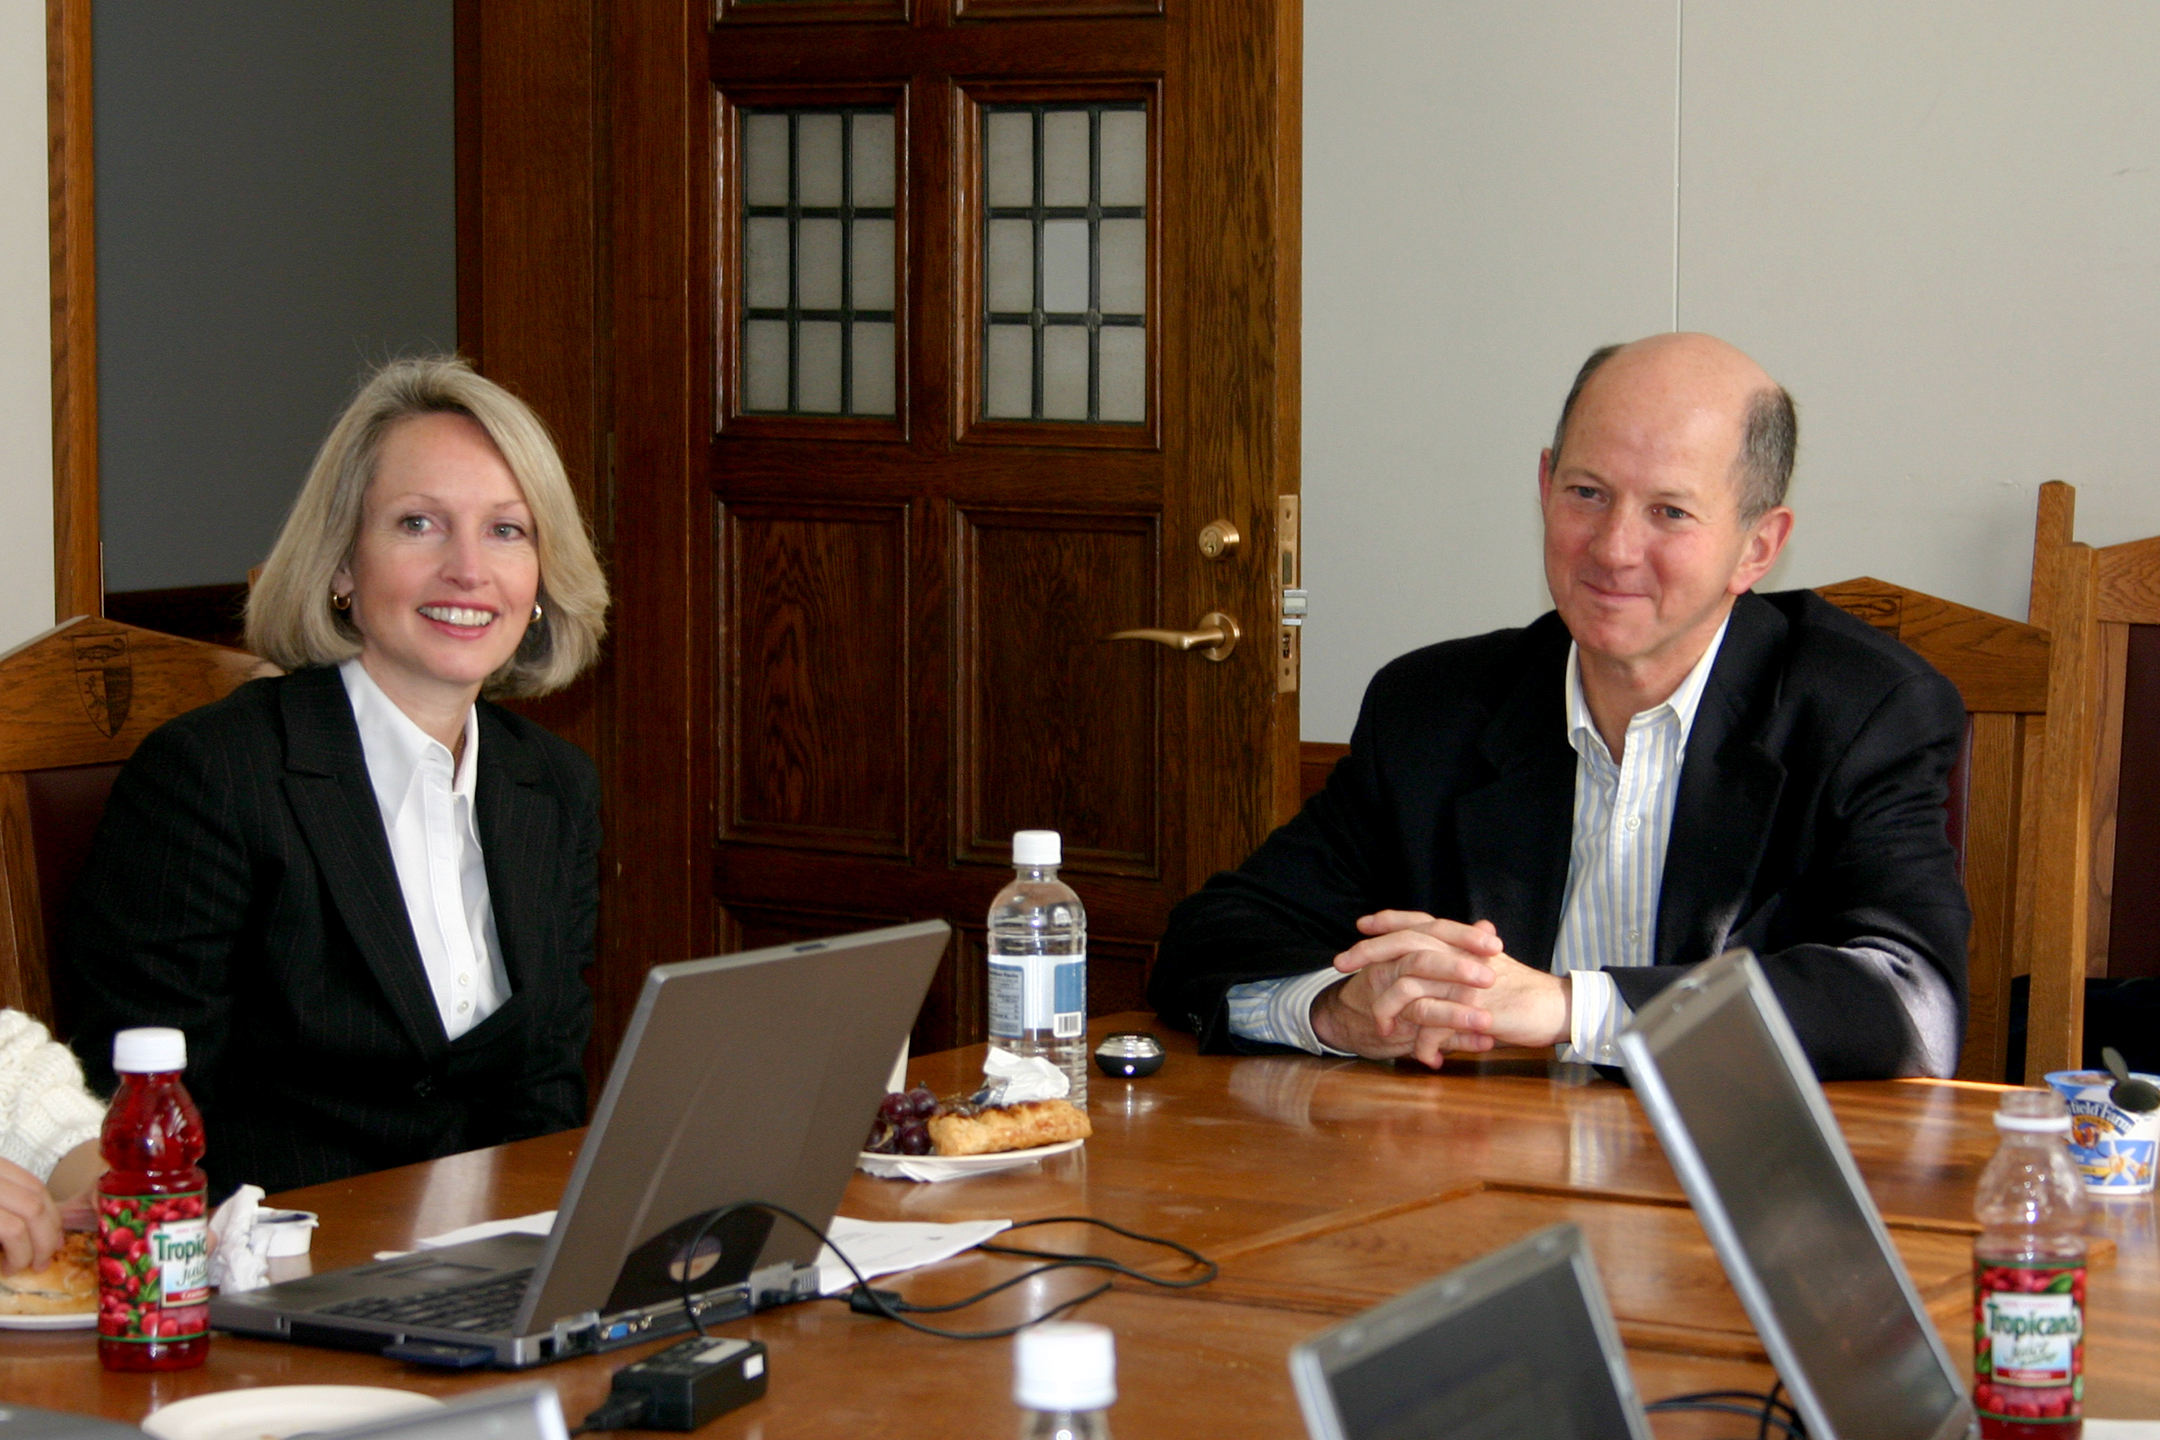 Joan Wood and James A. Geraghty '80